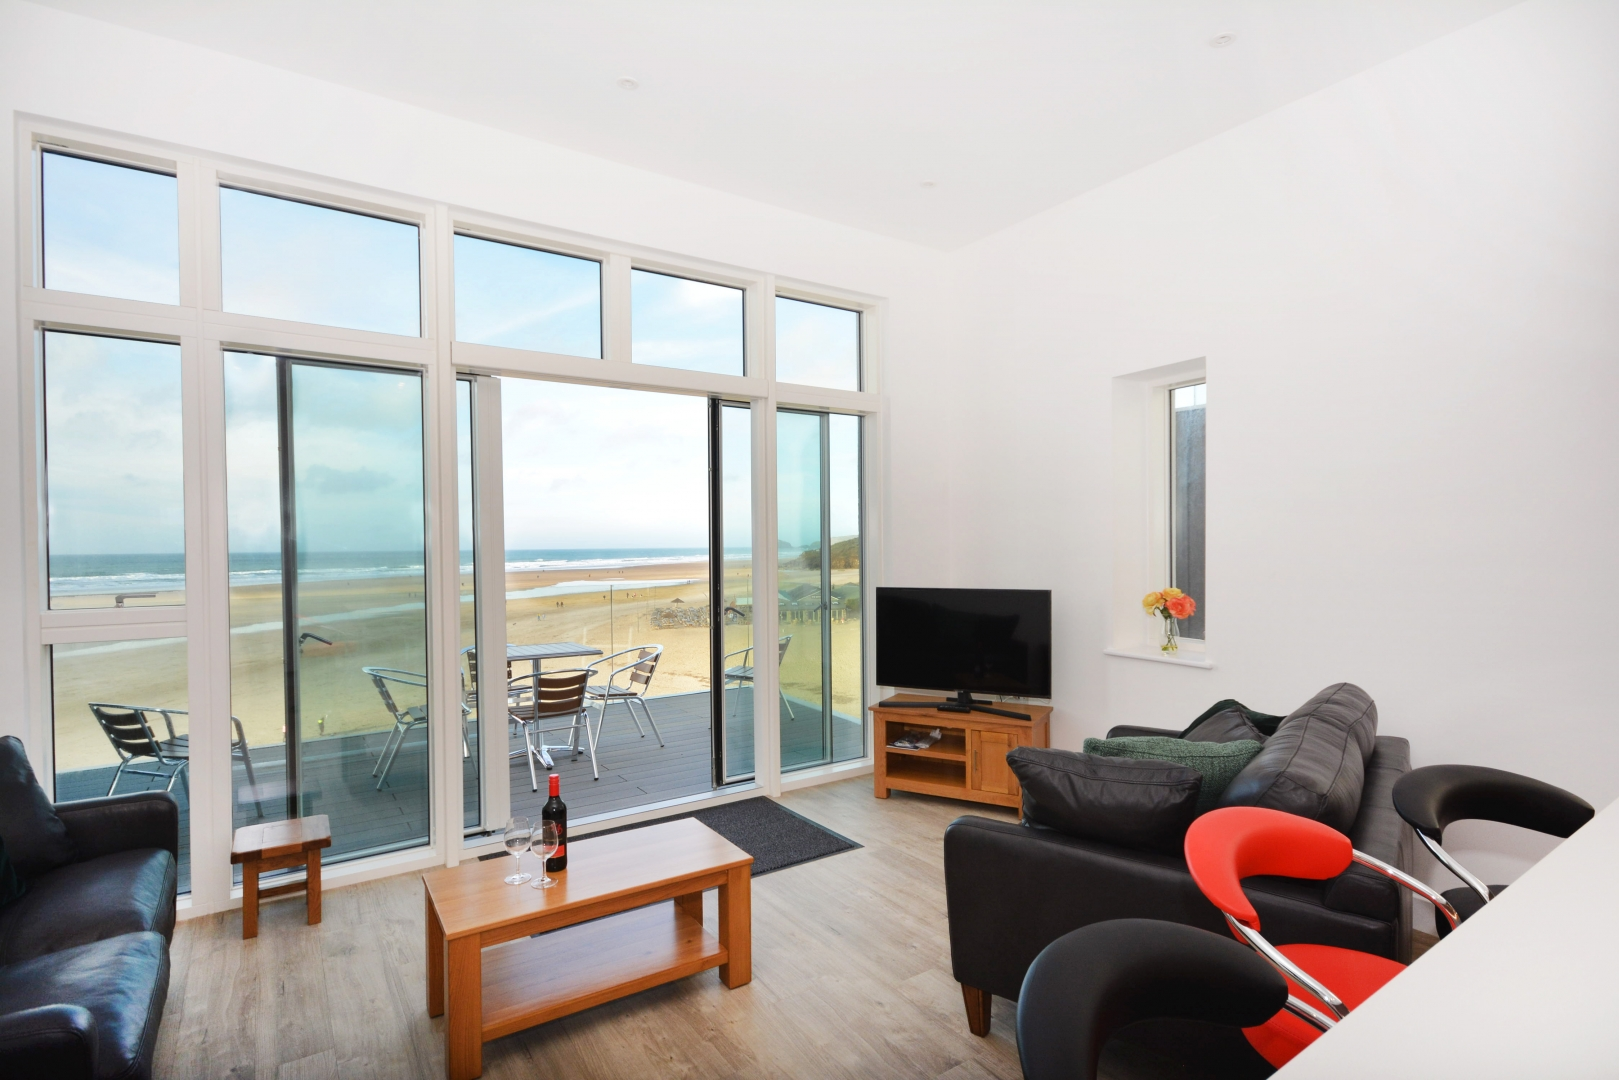 tl_files/All photos/Self Catering/36 The Dunes/36 The Dunes - Lounge View.jpg